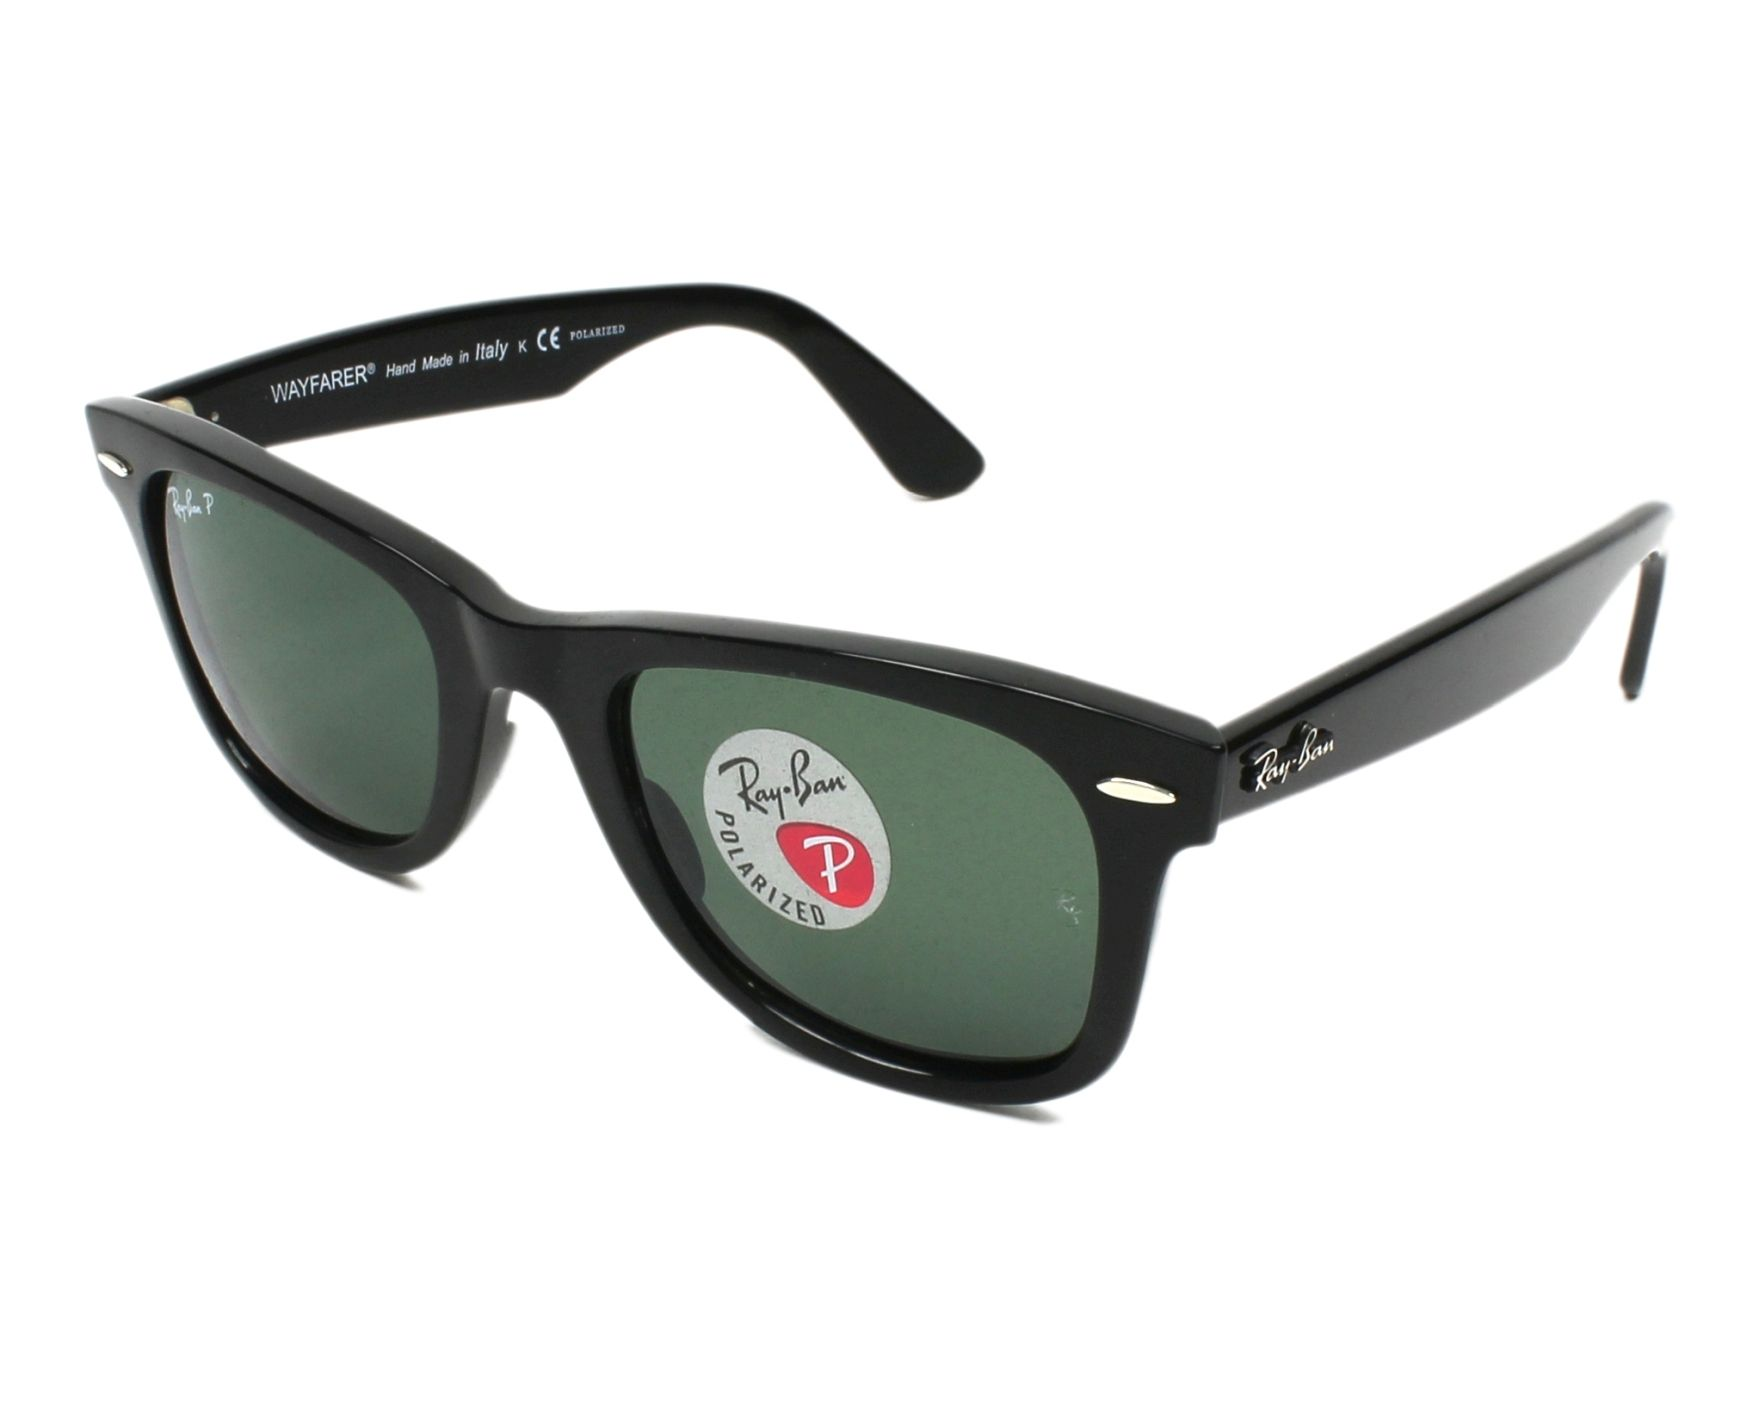 f4fad6a82129b Sunglasses Ray-Ban RB-4340 601 58 50-22 Black profile view